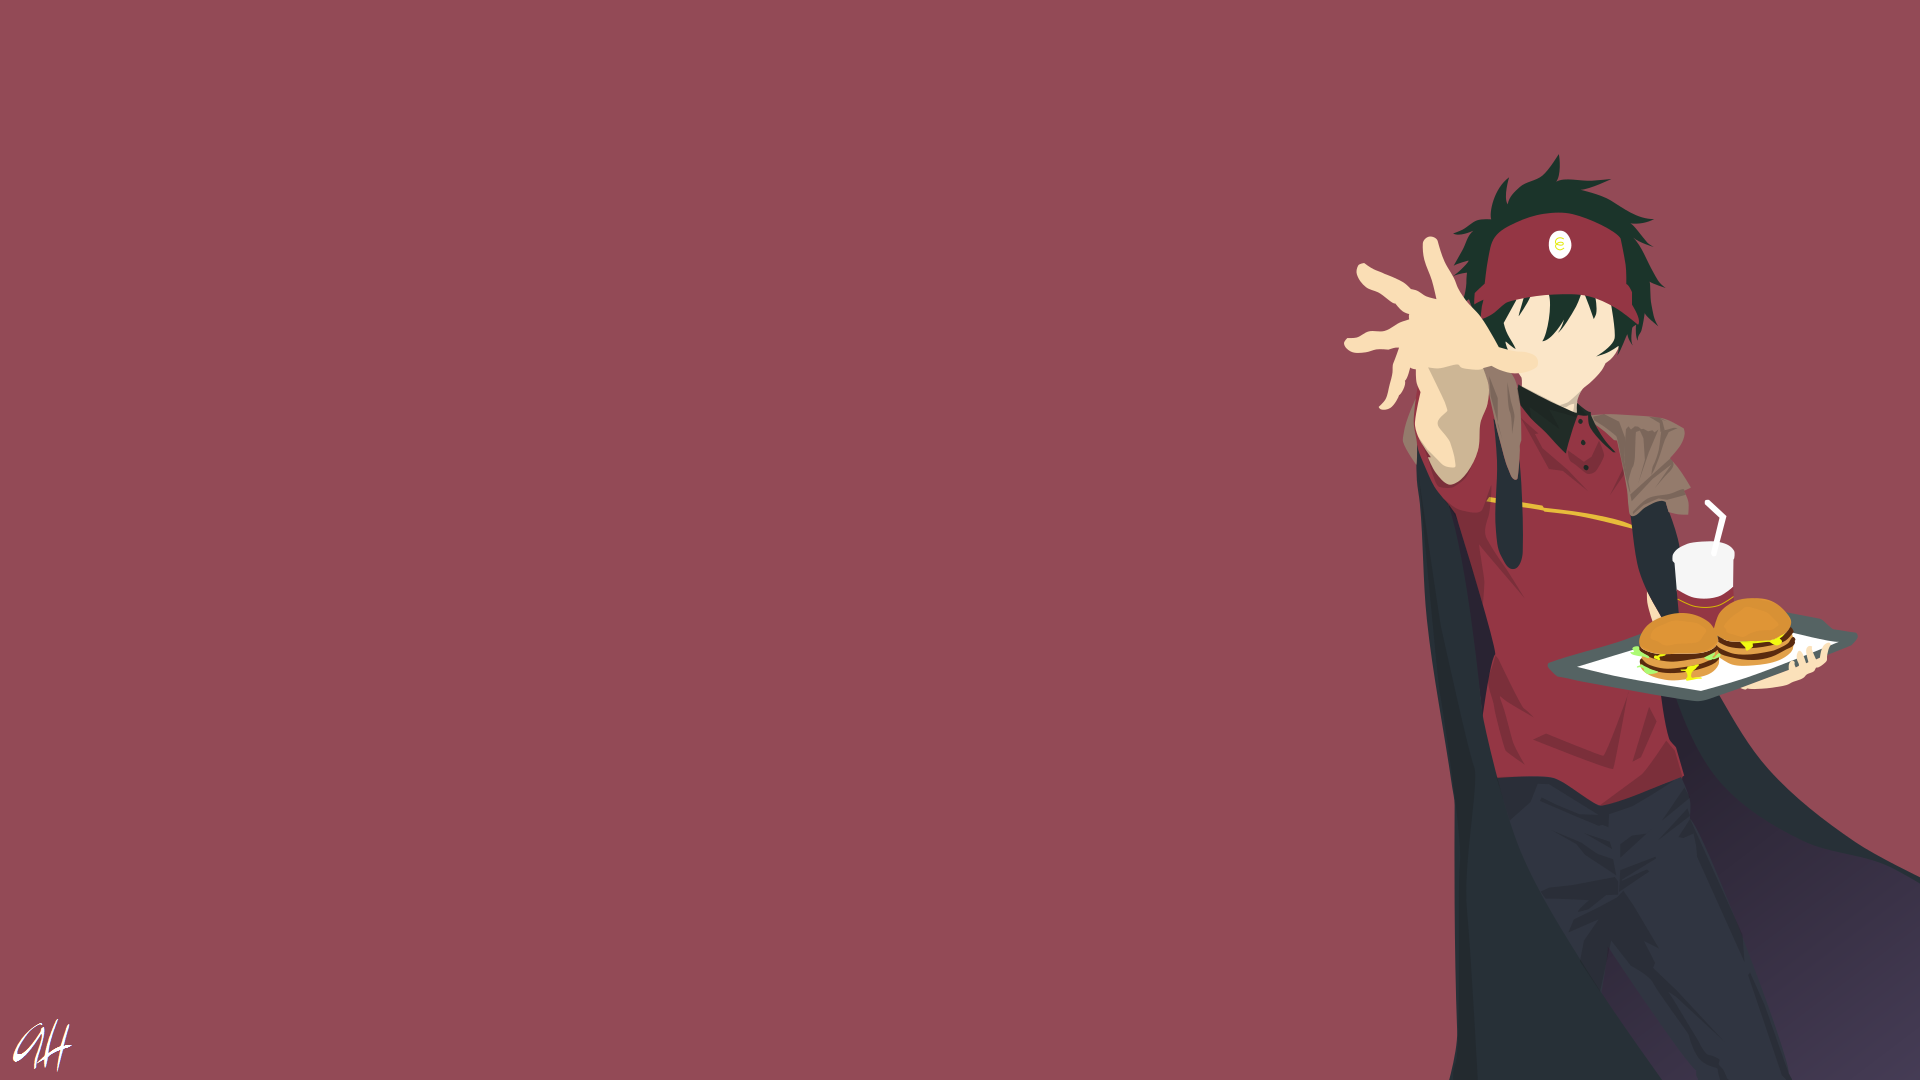 Maou Sadao From The Devil Is A Part Timer Hd Wallpaper